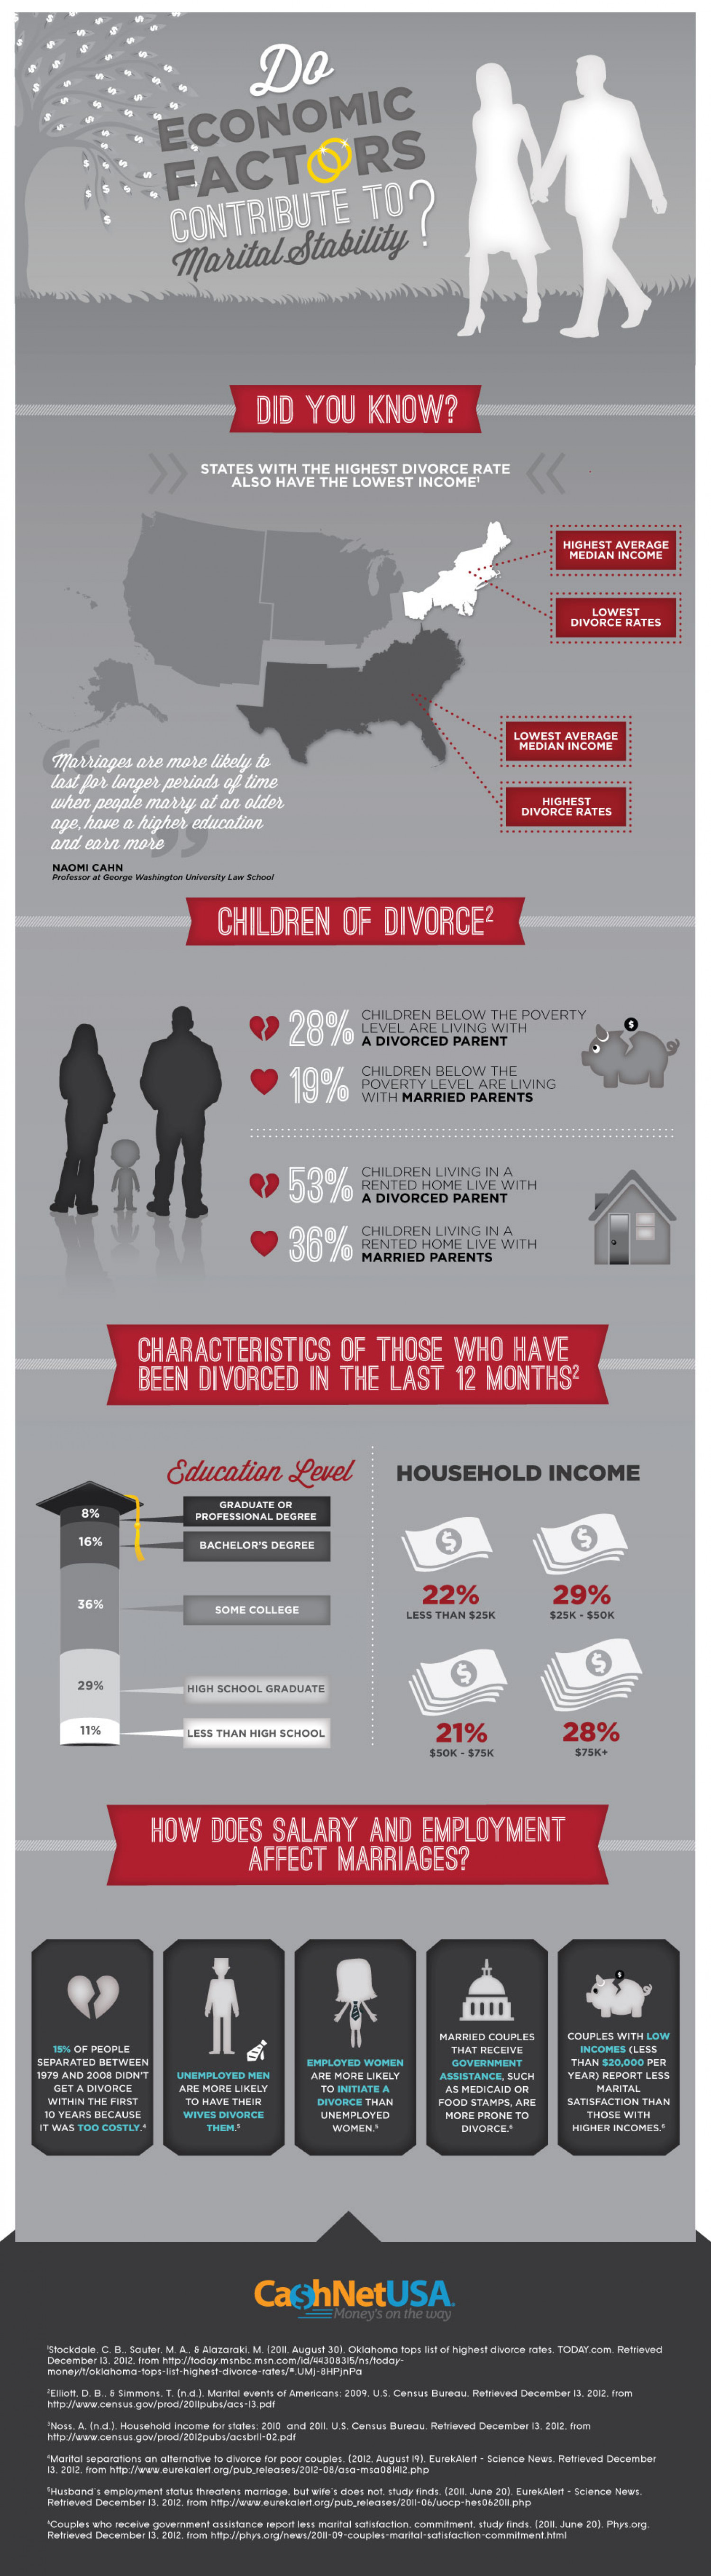 Do Economic Factors Contribute to Marital Stability?  Infographic